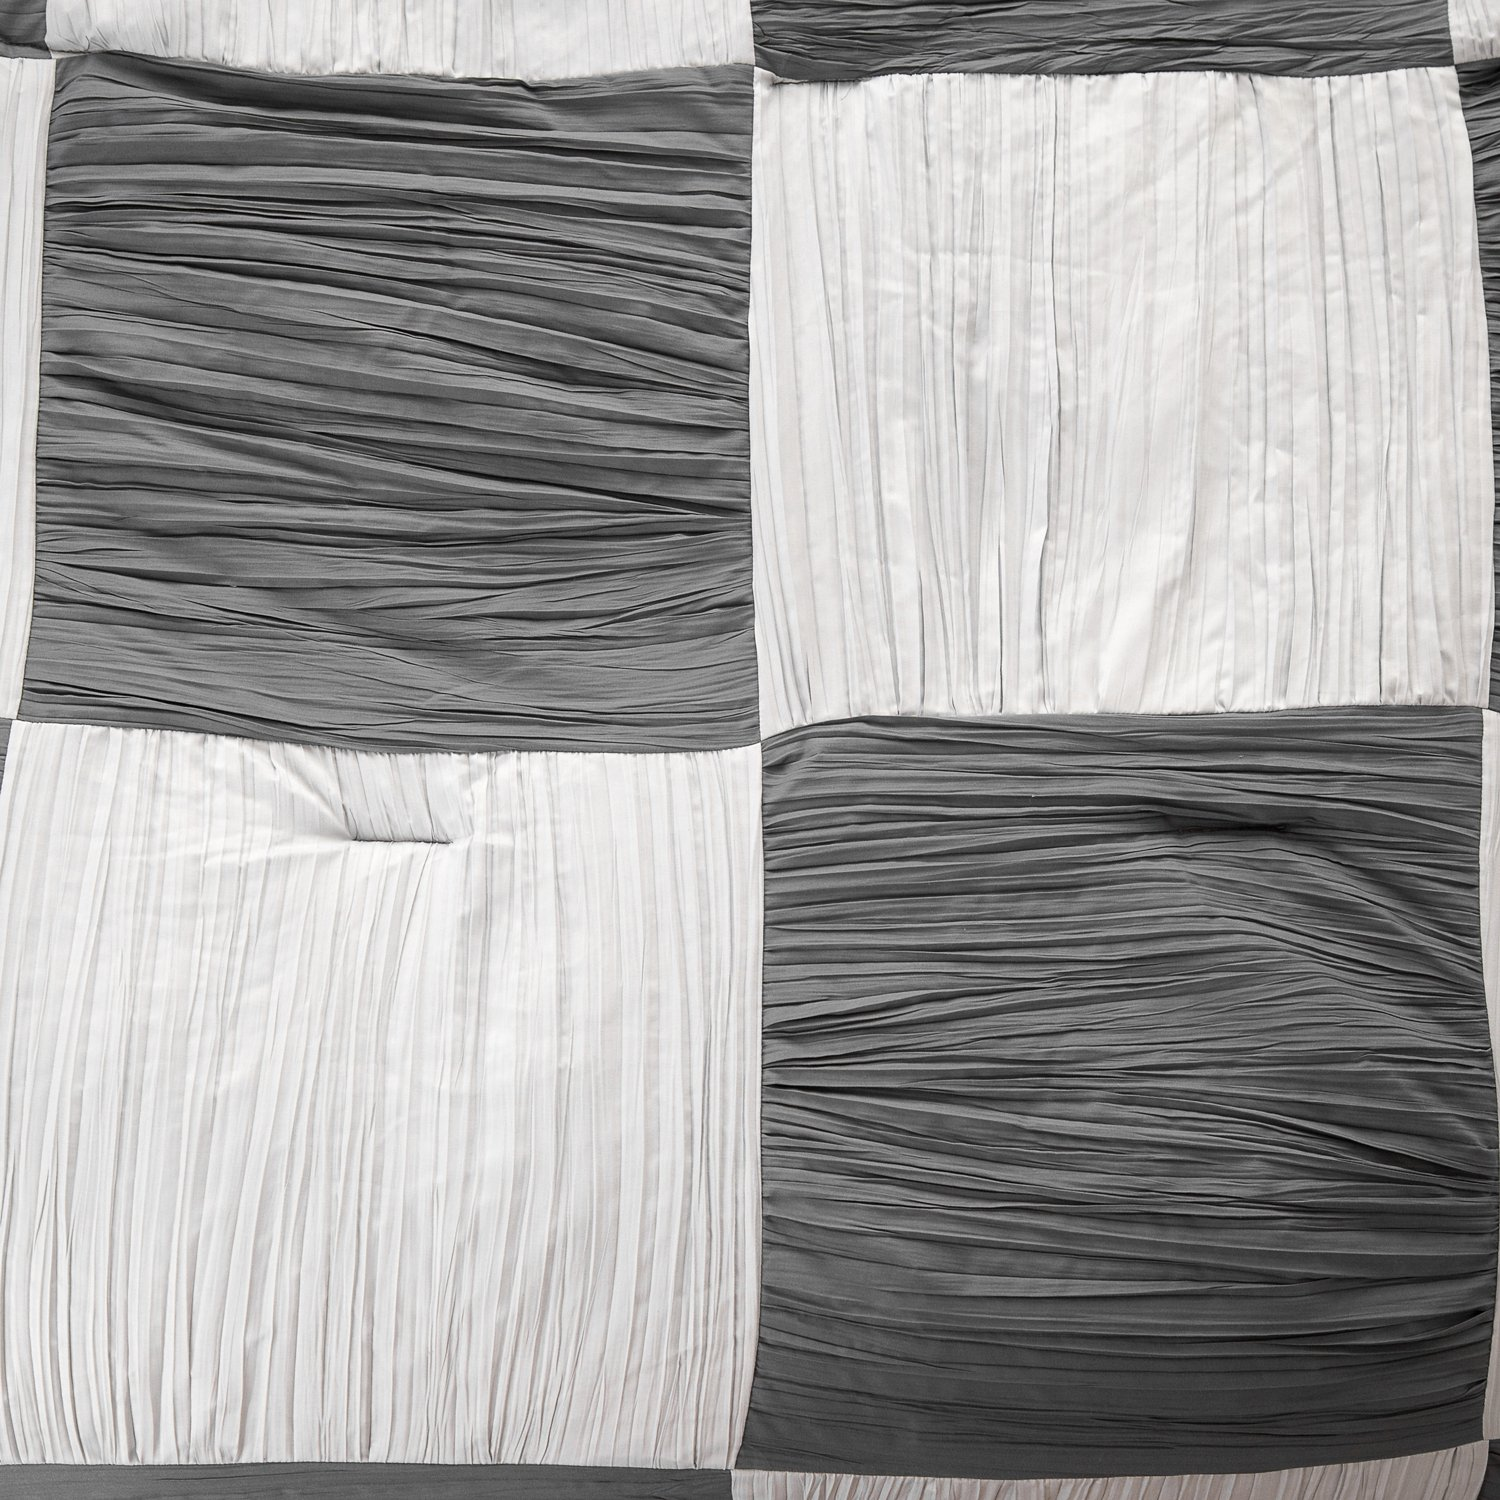 Black and White Full/Queen size 88x88 Bedding Comforter Chessboard Pattern Down Alternative with Pleat Surface and Grey Reverse Side by Bedsure